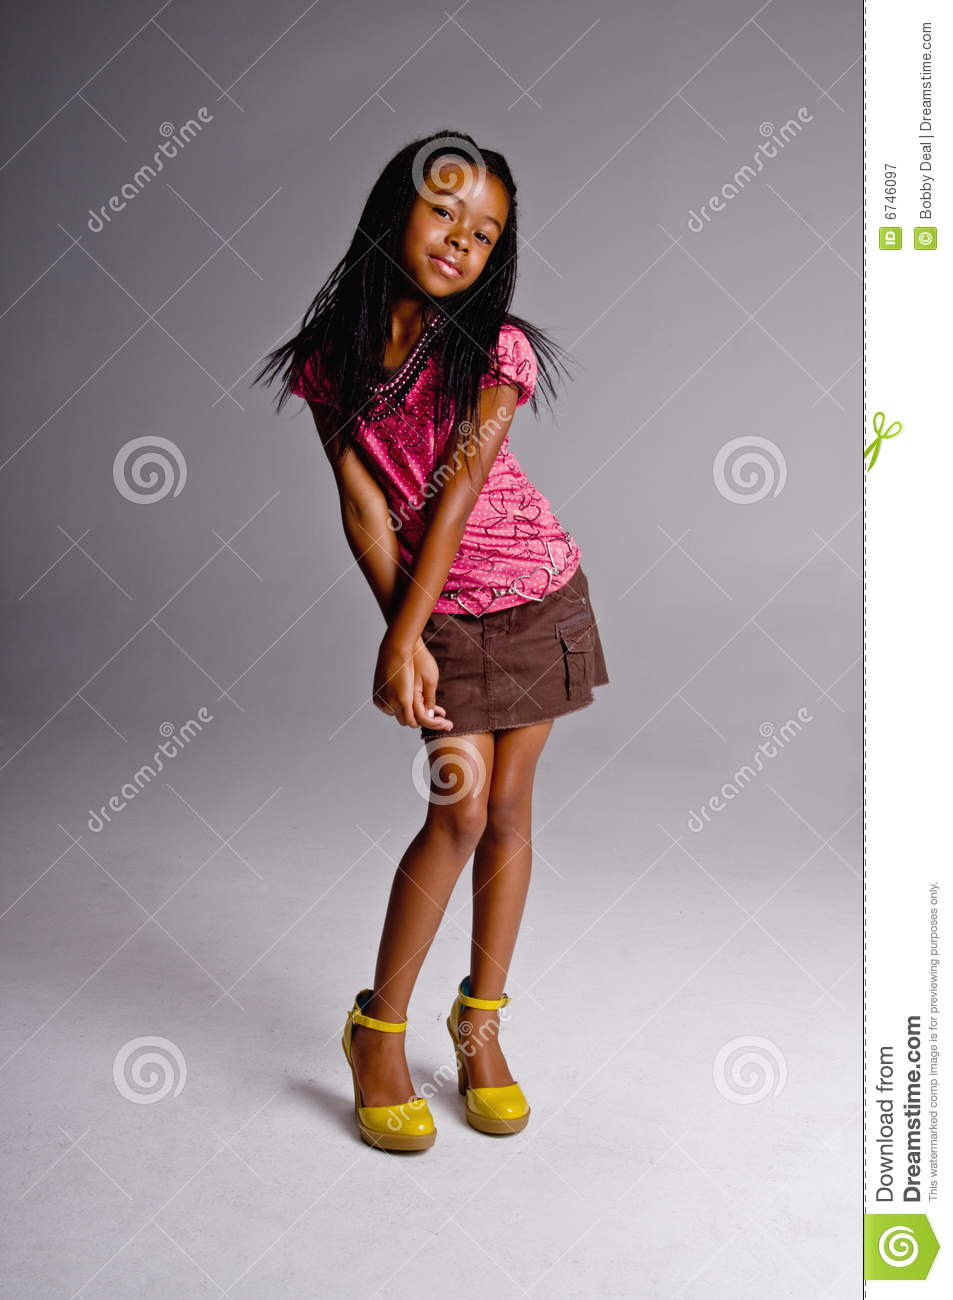 African American Girl Fashion Dress Images Download